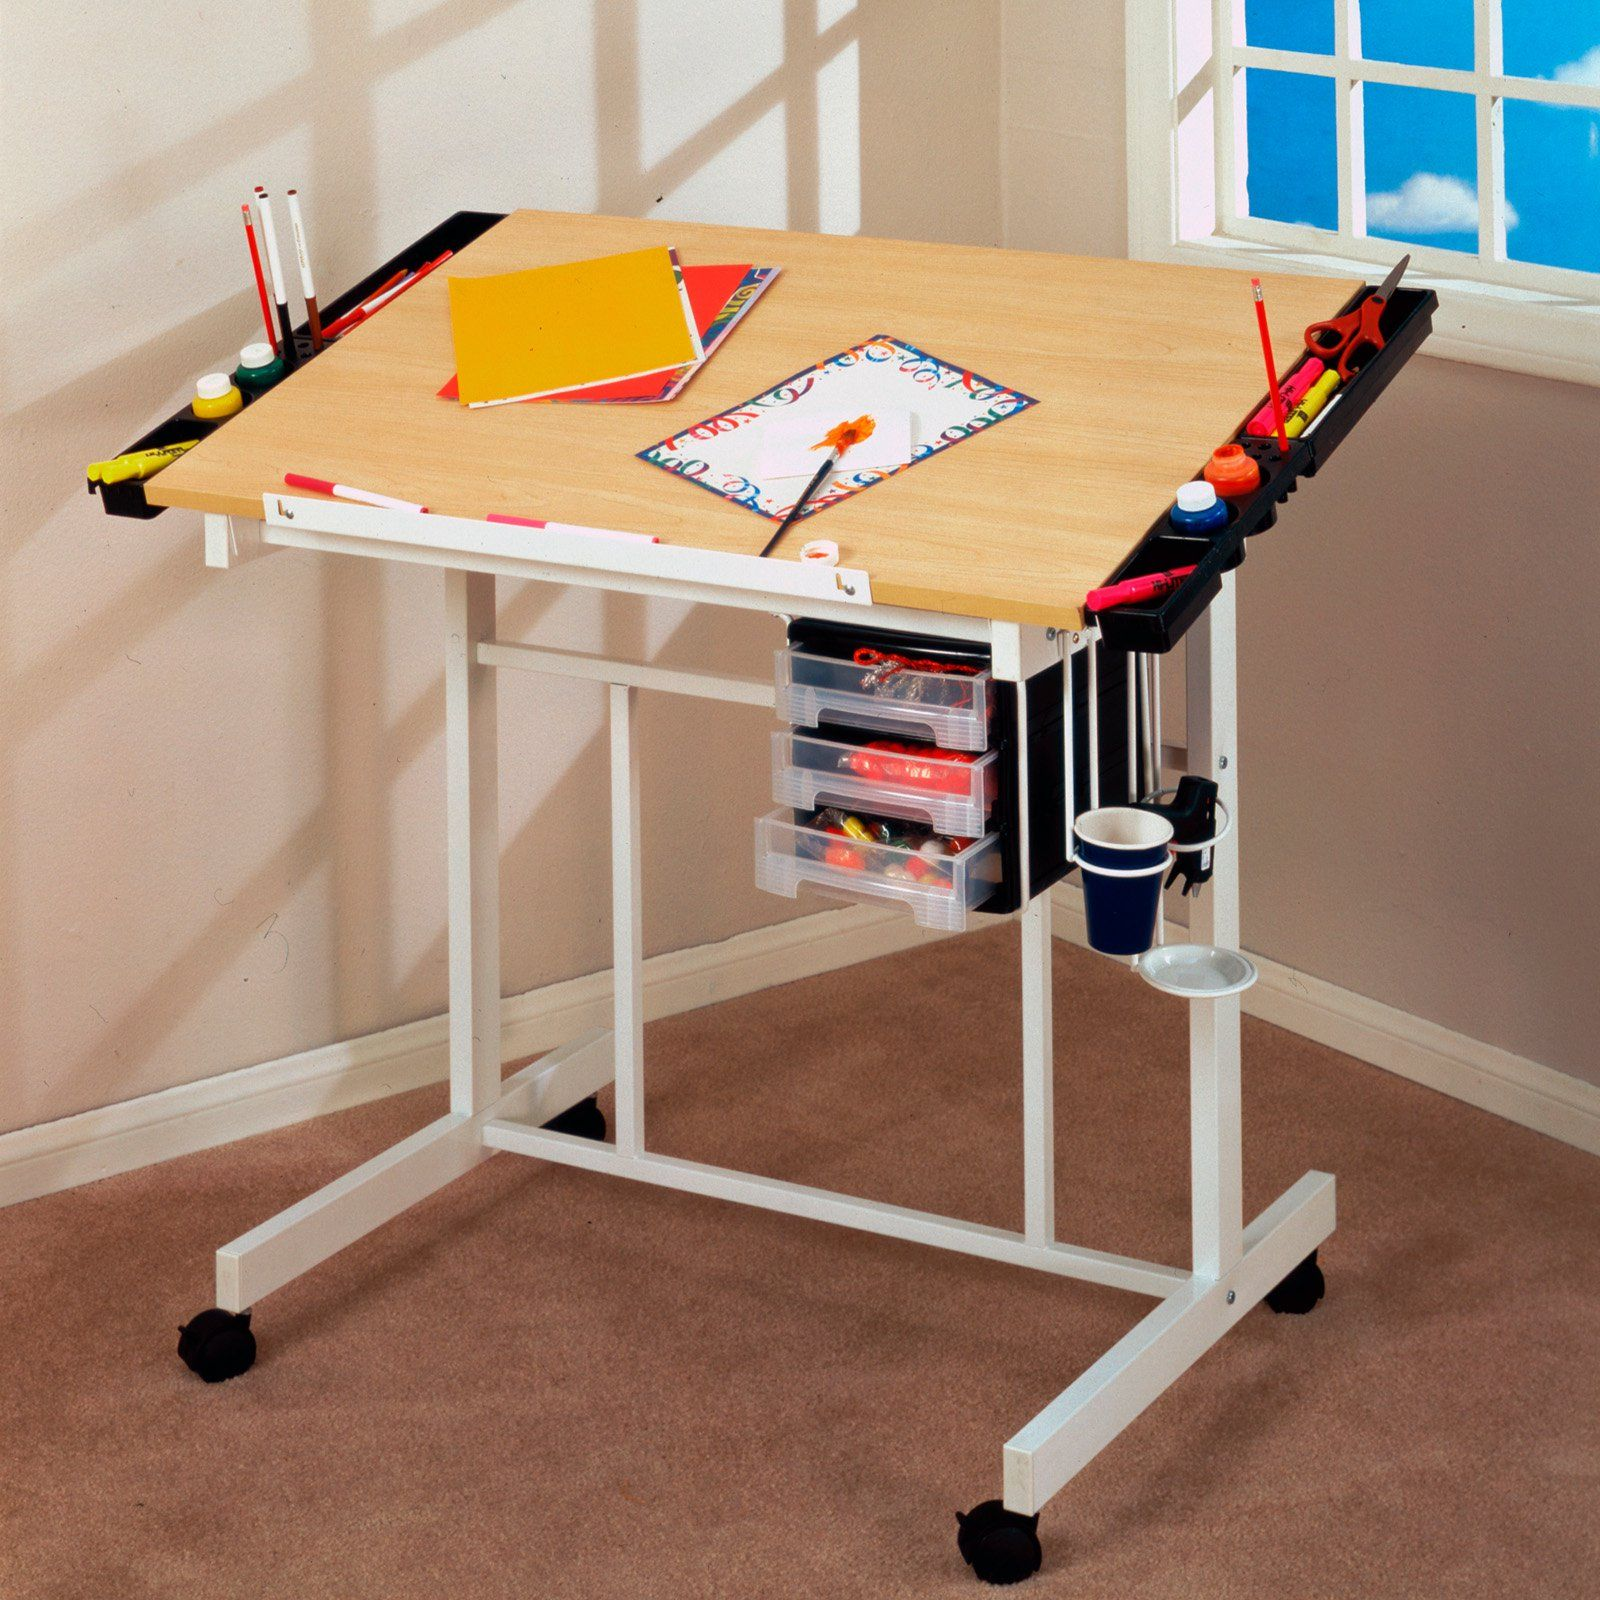 Studio Designs Deluxe Rolling Drafting Table Station   $123.71 @hayneedle